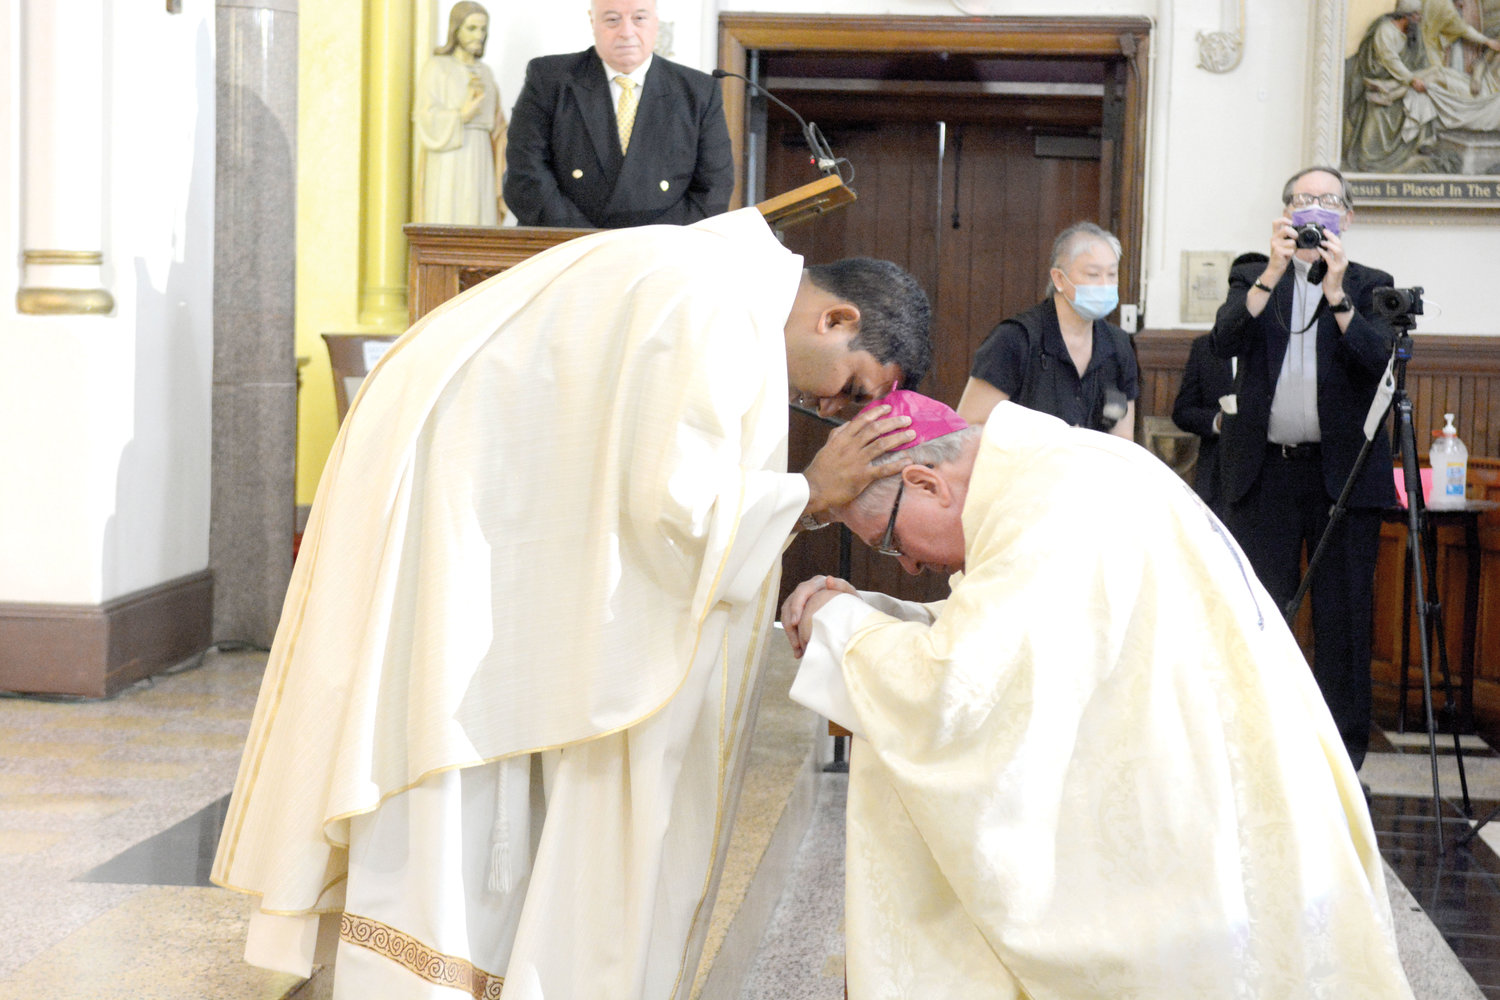 Father Lokuhettige offers a first blessing to Bishop O'Hara.